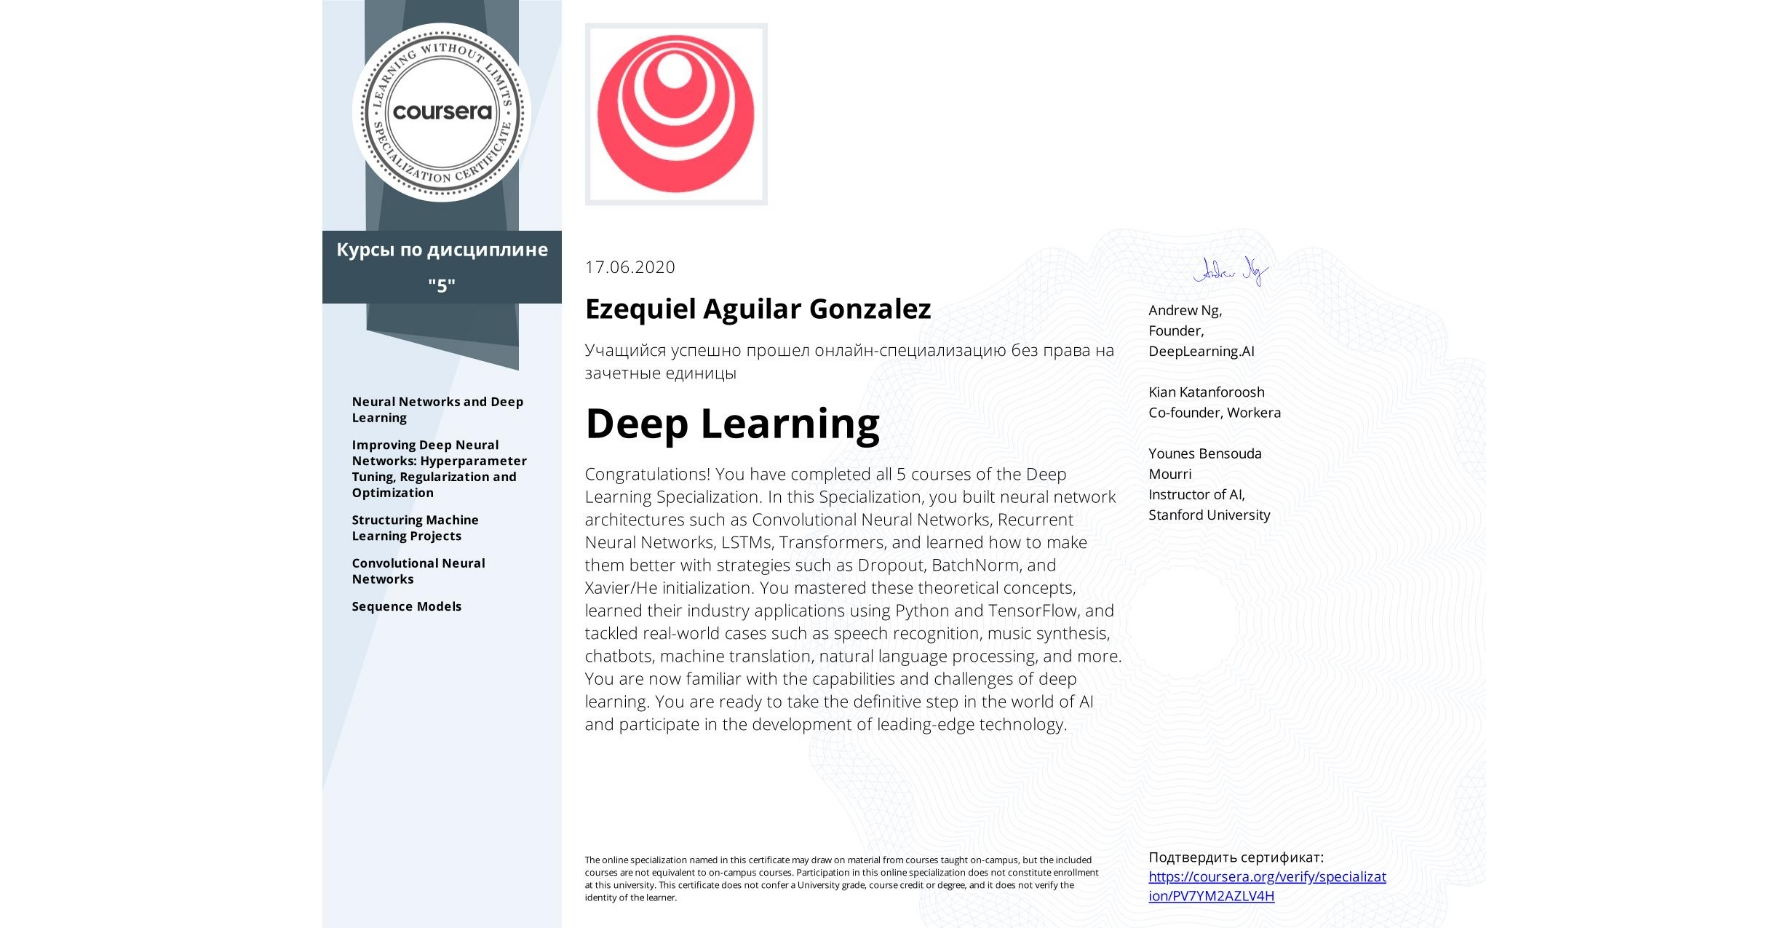 View certificate for Ezequiel Aguilar Gonzalez, Deep Learning, offered through Coursera. Congratulations! You have completed all 5 courses of the Deep Learning Specialization.  In this Specialization, you built neural network architectures such as Convolutional Neural Networks, Recurrent Neural Networks, LSTMs, Transformers, and learned how to make them better with strategies such as Dropout, BatchNorm, and Xavier/He initialization. You mastered these theoretical concepts, learned their industry applications using Python and TensorFlow, and tackled real-world cases such as speech recognition, music synthesis, chatbots, machine translation, natural language processing, and more.  You are now familiar with the capabilities and challenges of deep learning. You are ready to take the definitive step in the world of AI and participate in the development of leading-edge technology.